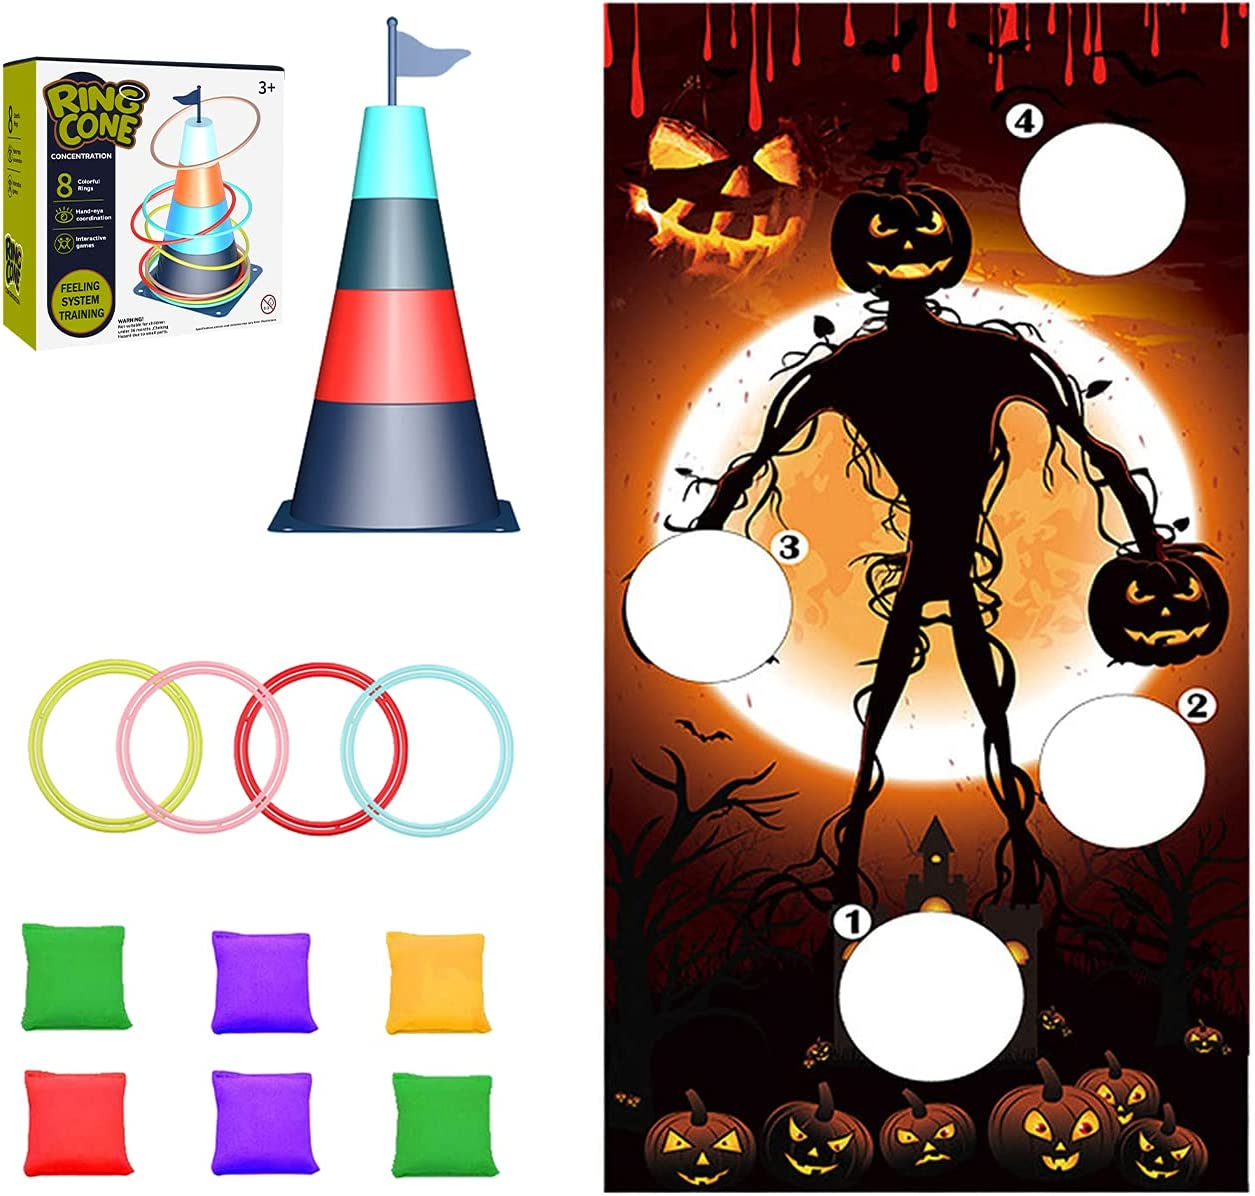 VHION Large-scale sale 4 Tucson Mall in 1 Halloween Themed Toss Banner Bag Bean Sets To Game